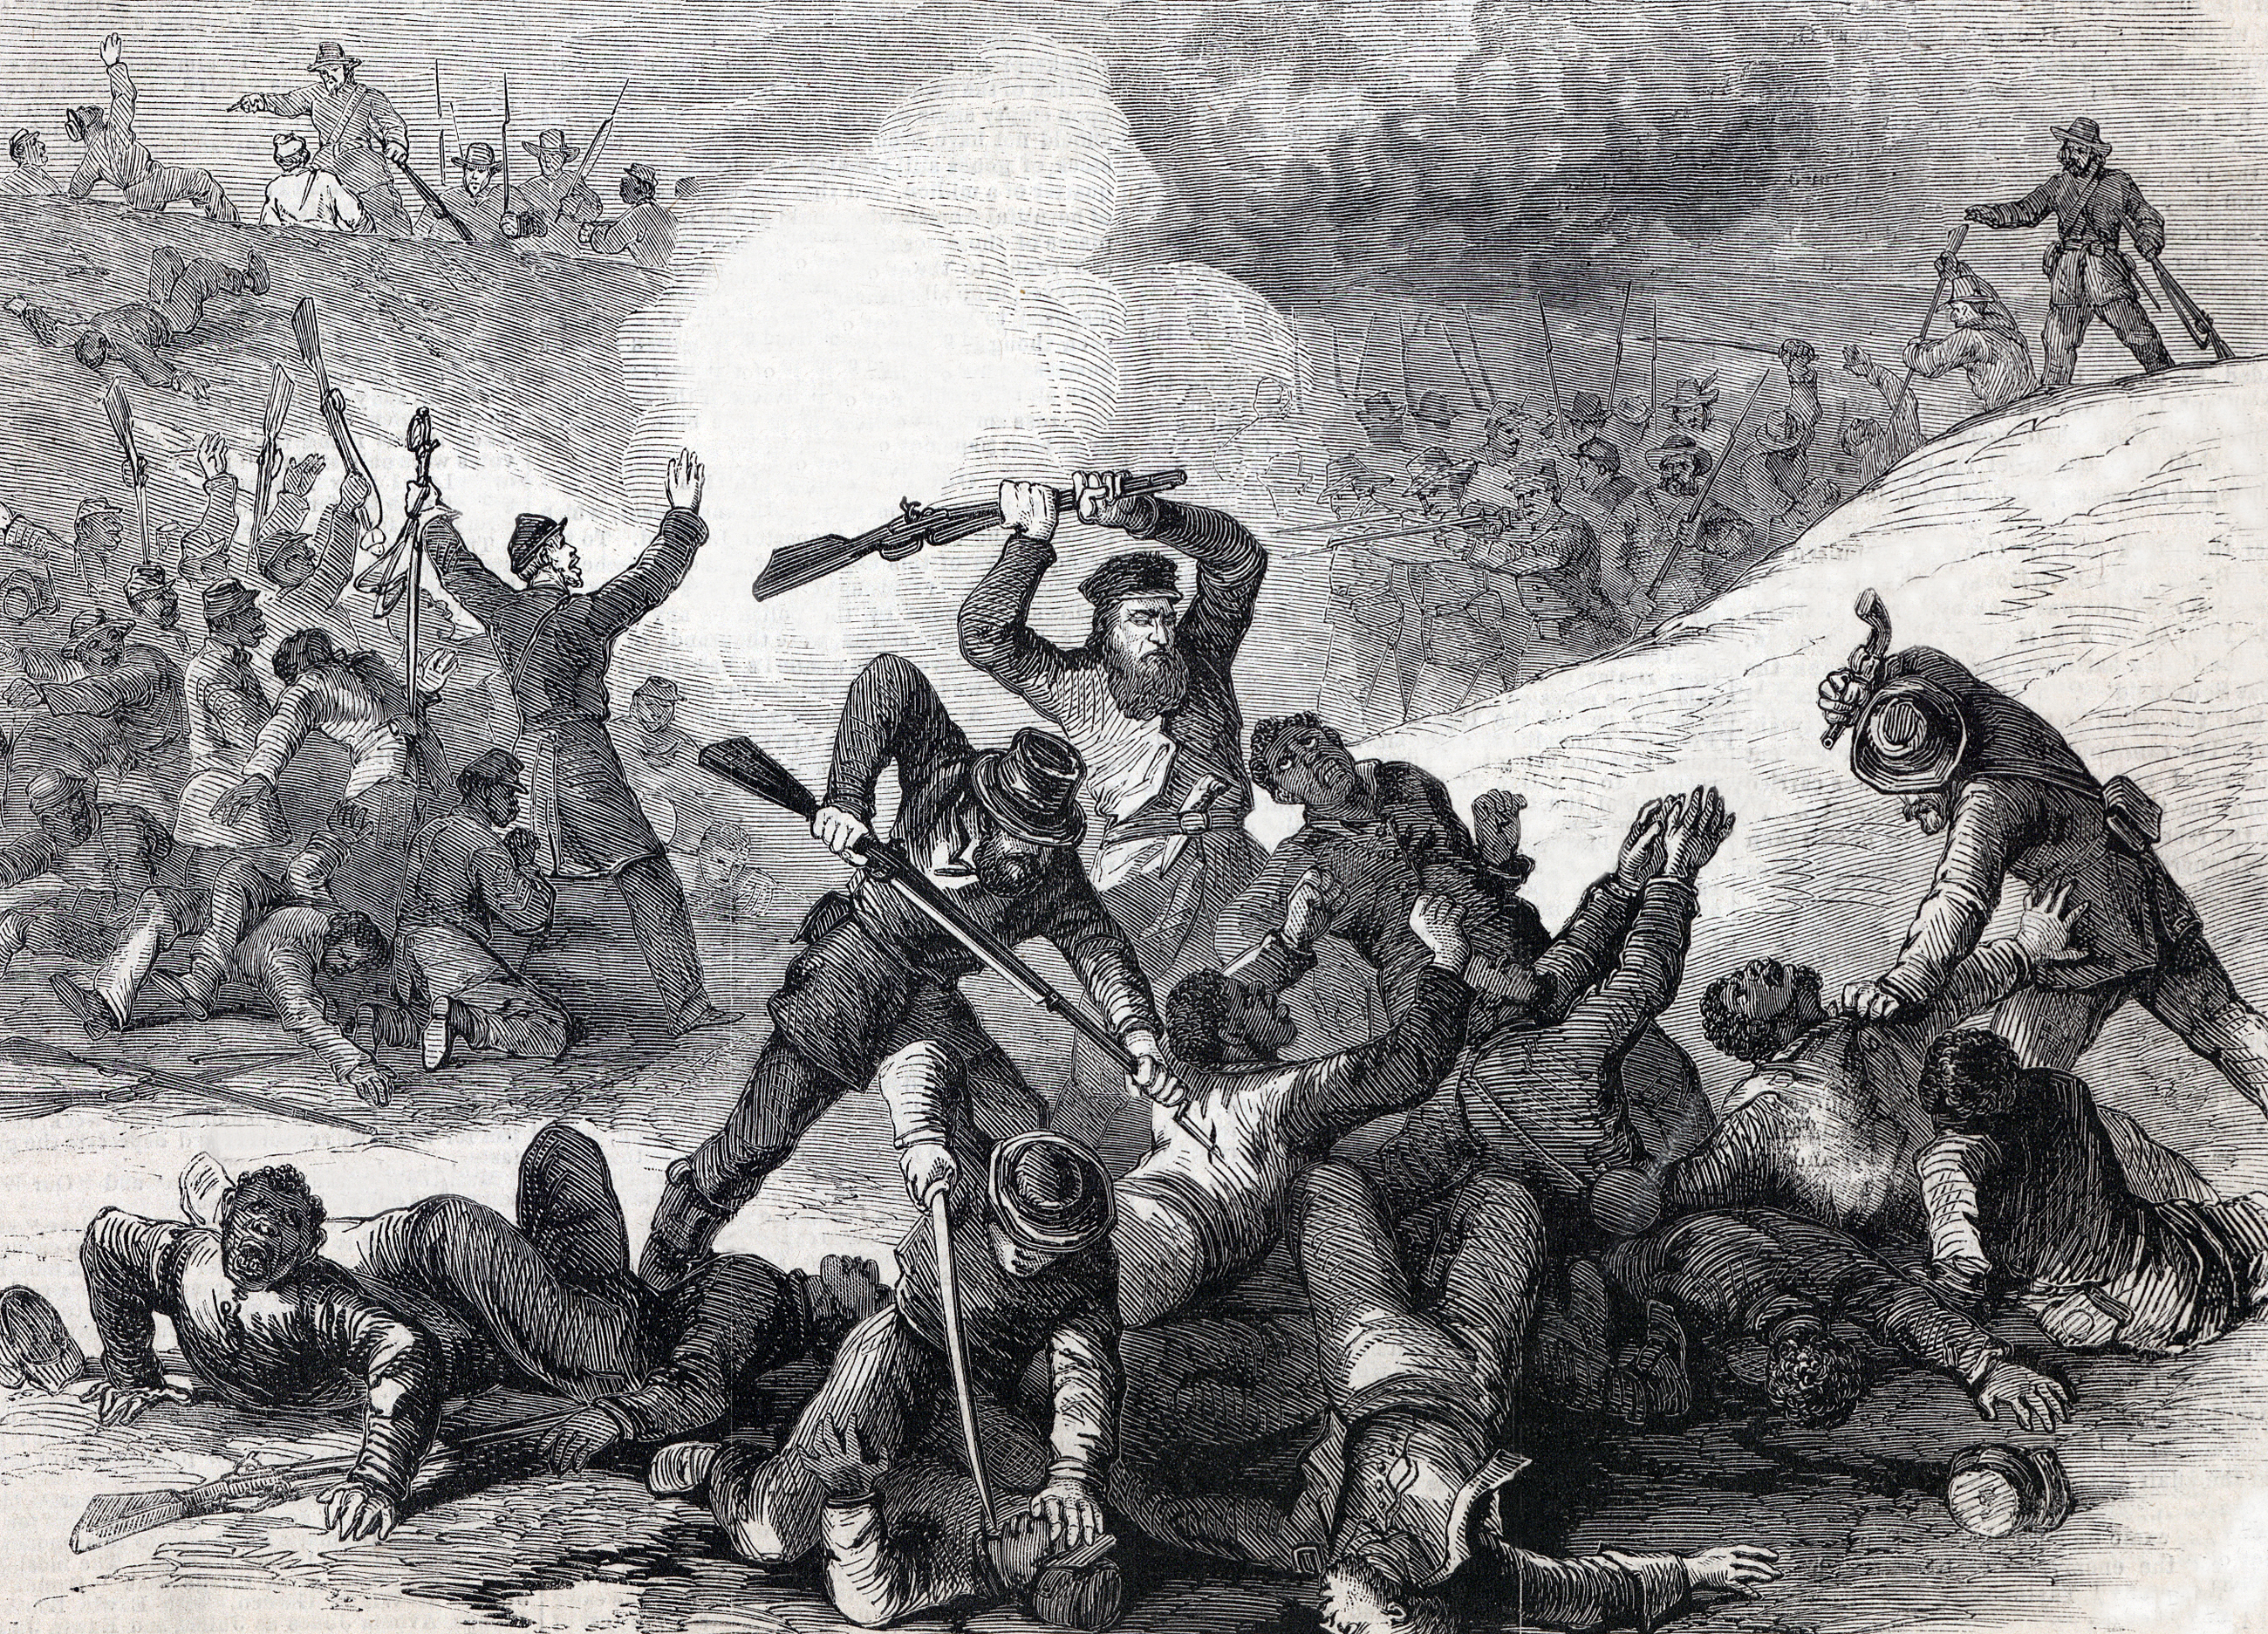 File:Battle of Fort Pillow.png